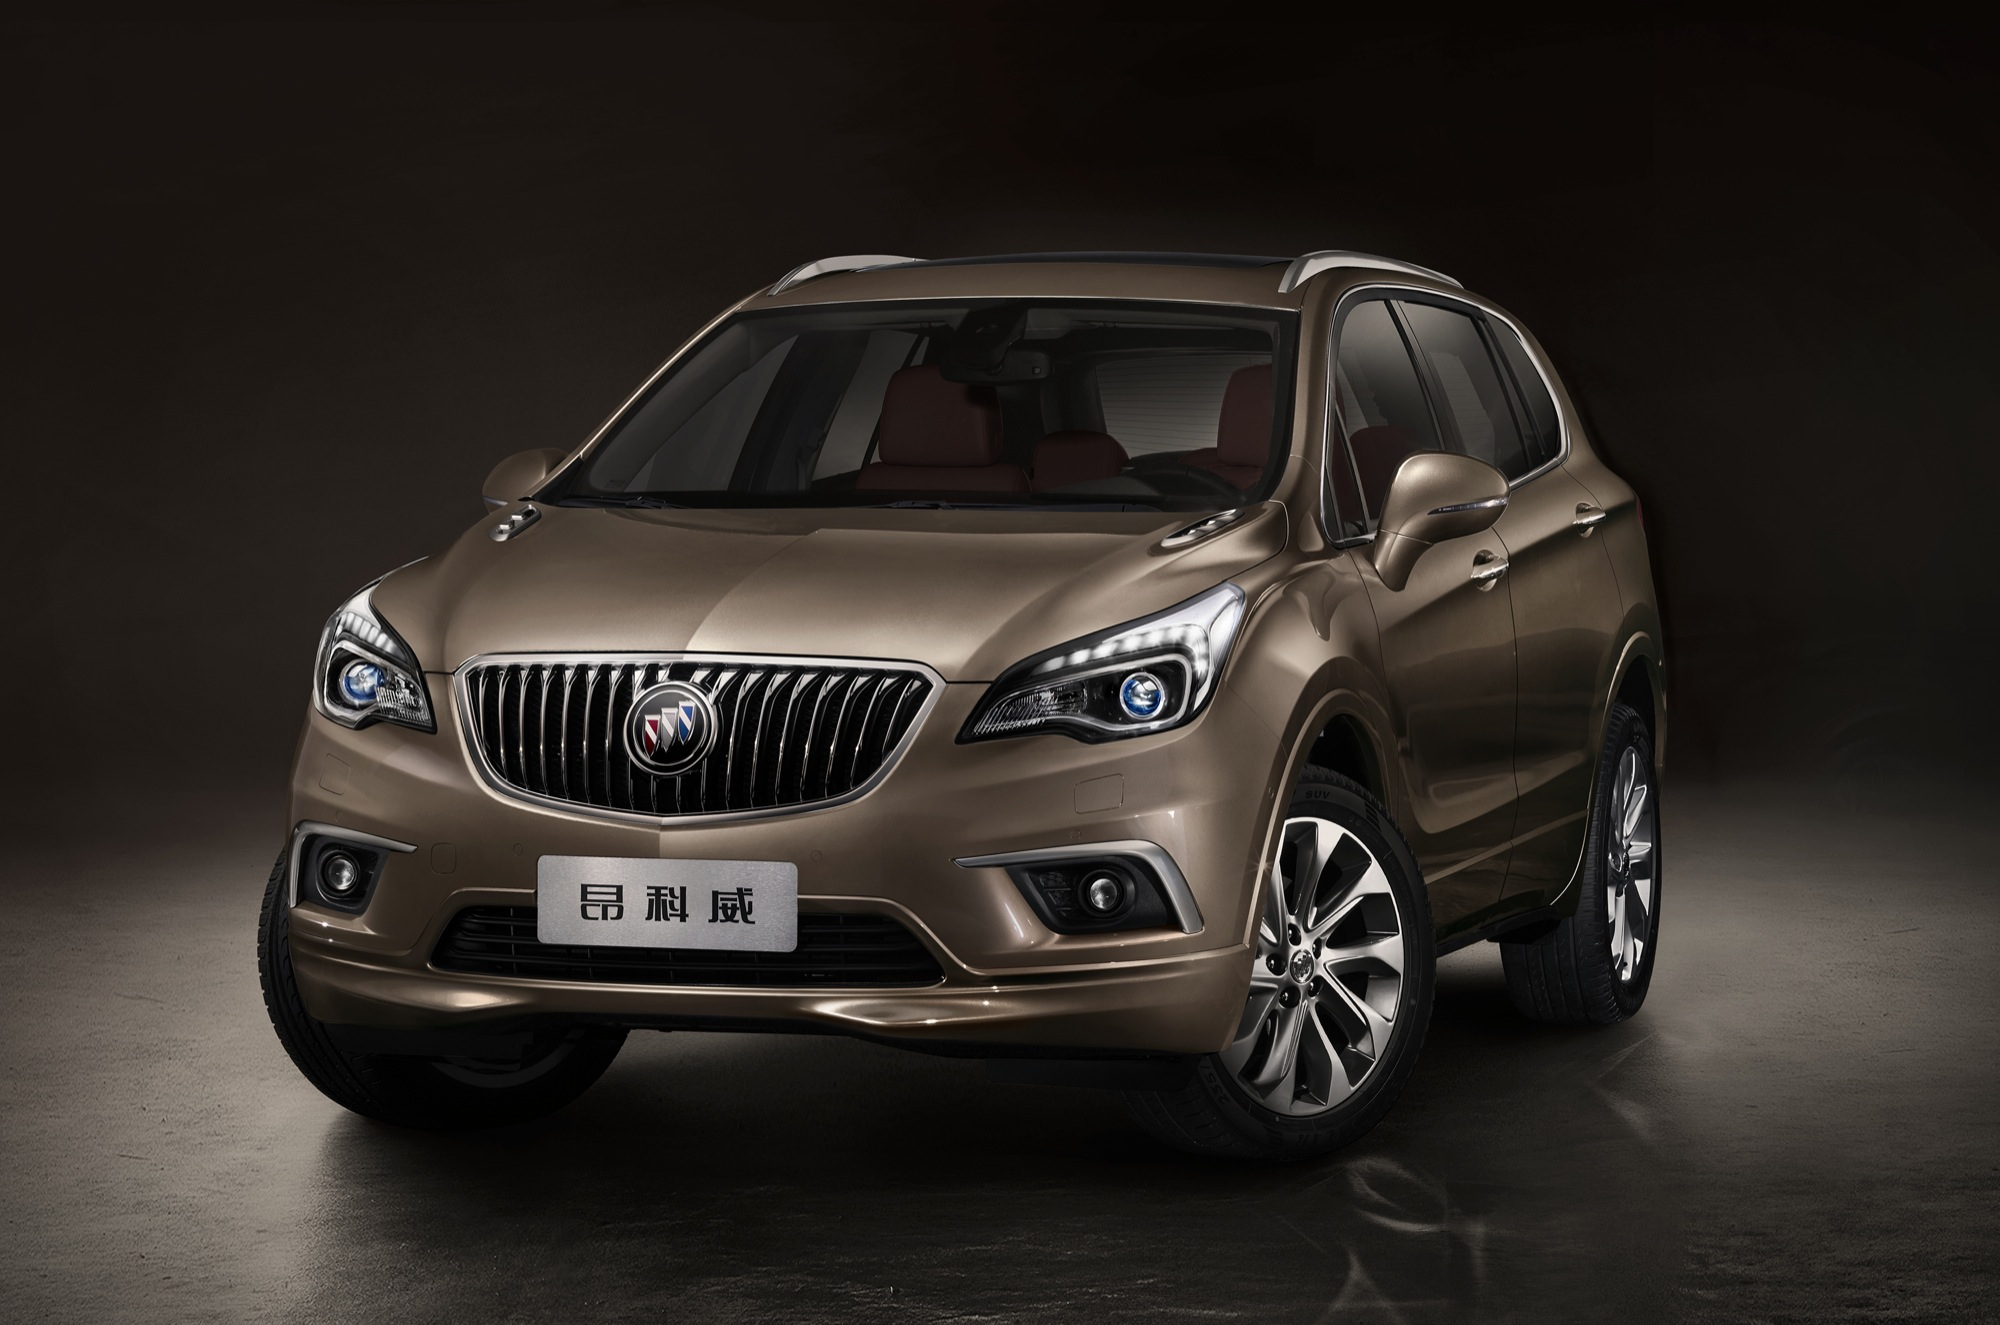 2016 Buick Envision #7